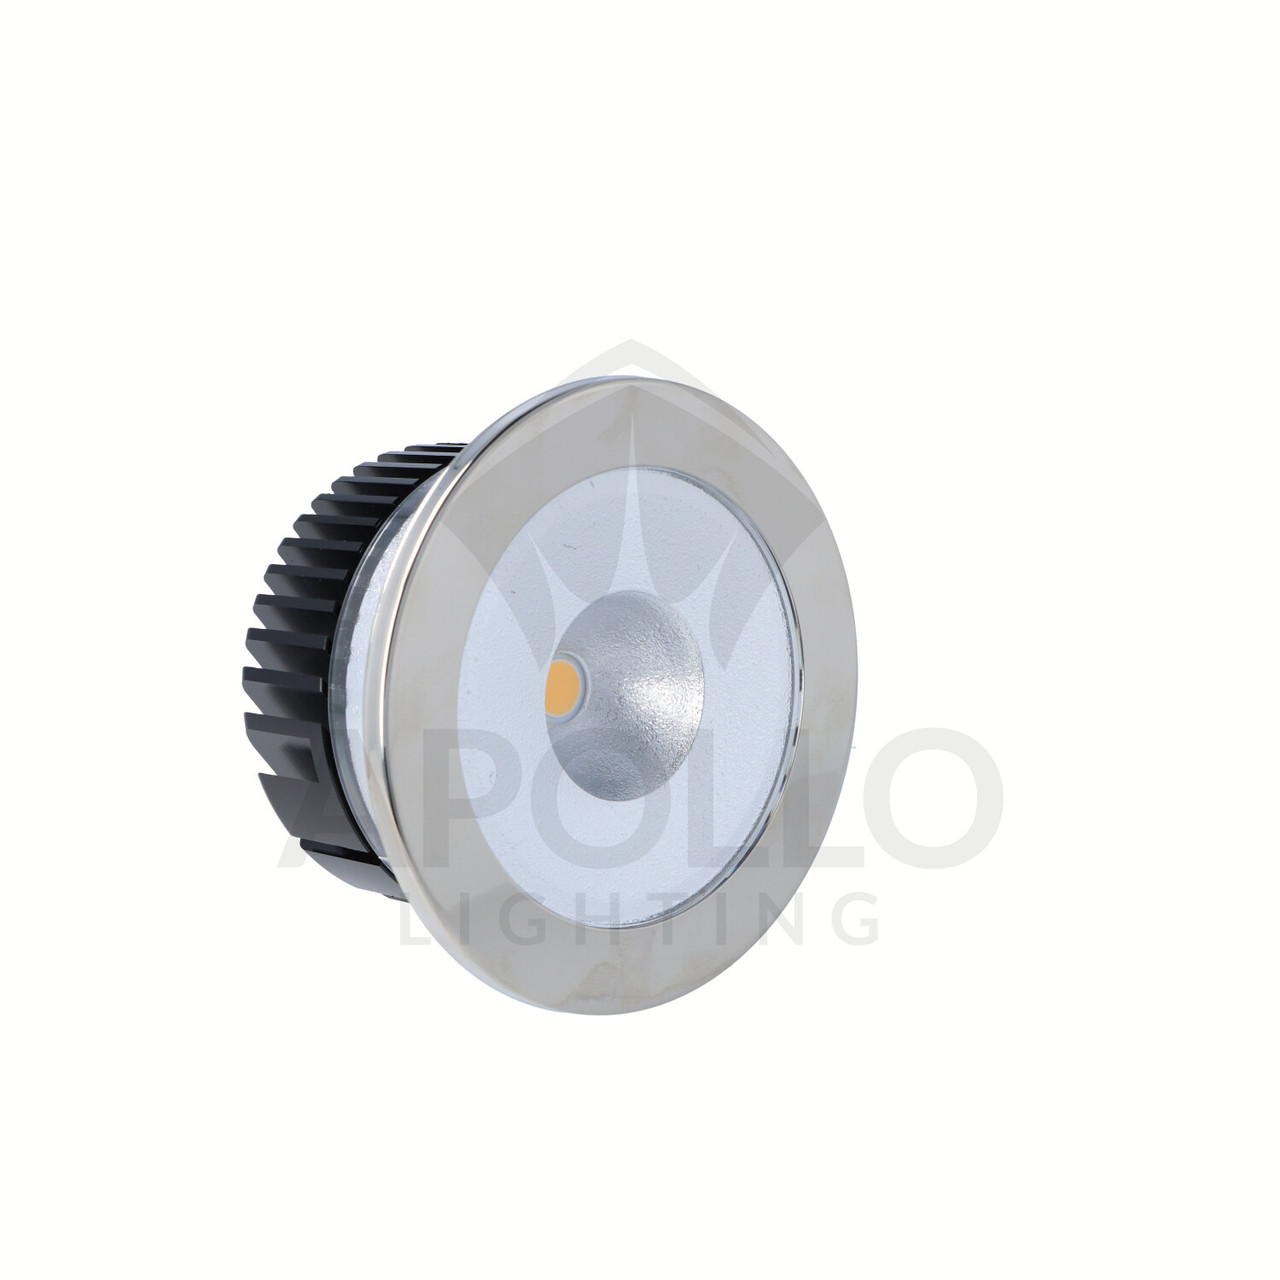 CRATER DOWNLIGHT STAINLESS STEEL (D4-CRATE-L13WA-35-SS-07-0000)